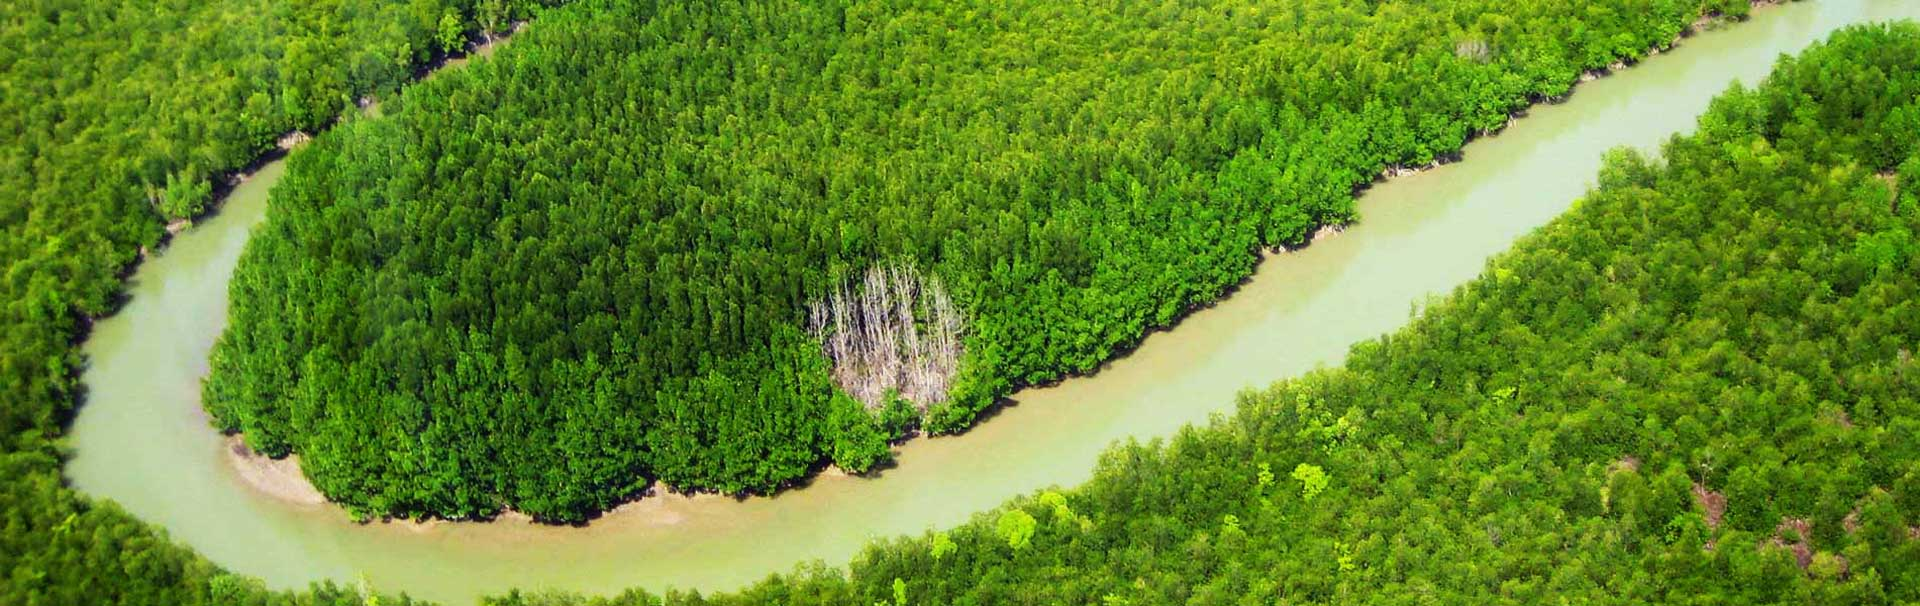 Mangroves and waterways in Phang Nga Bay